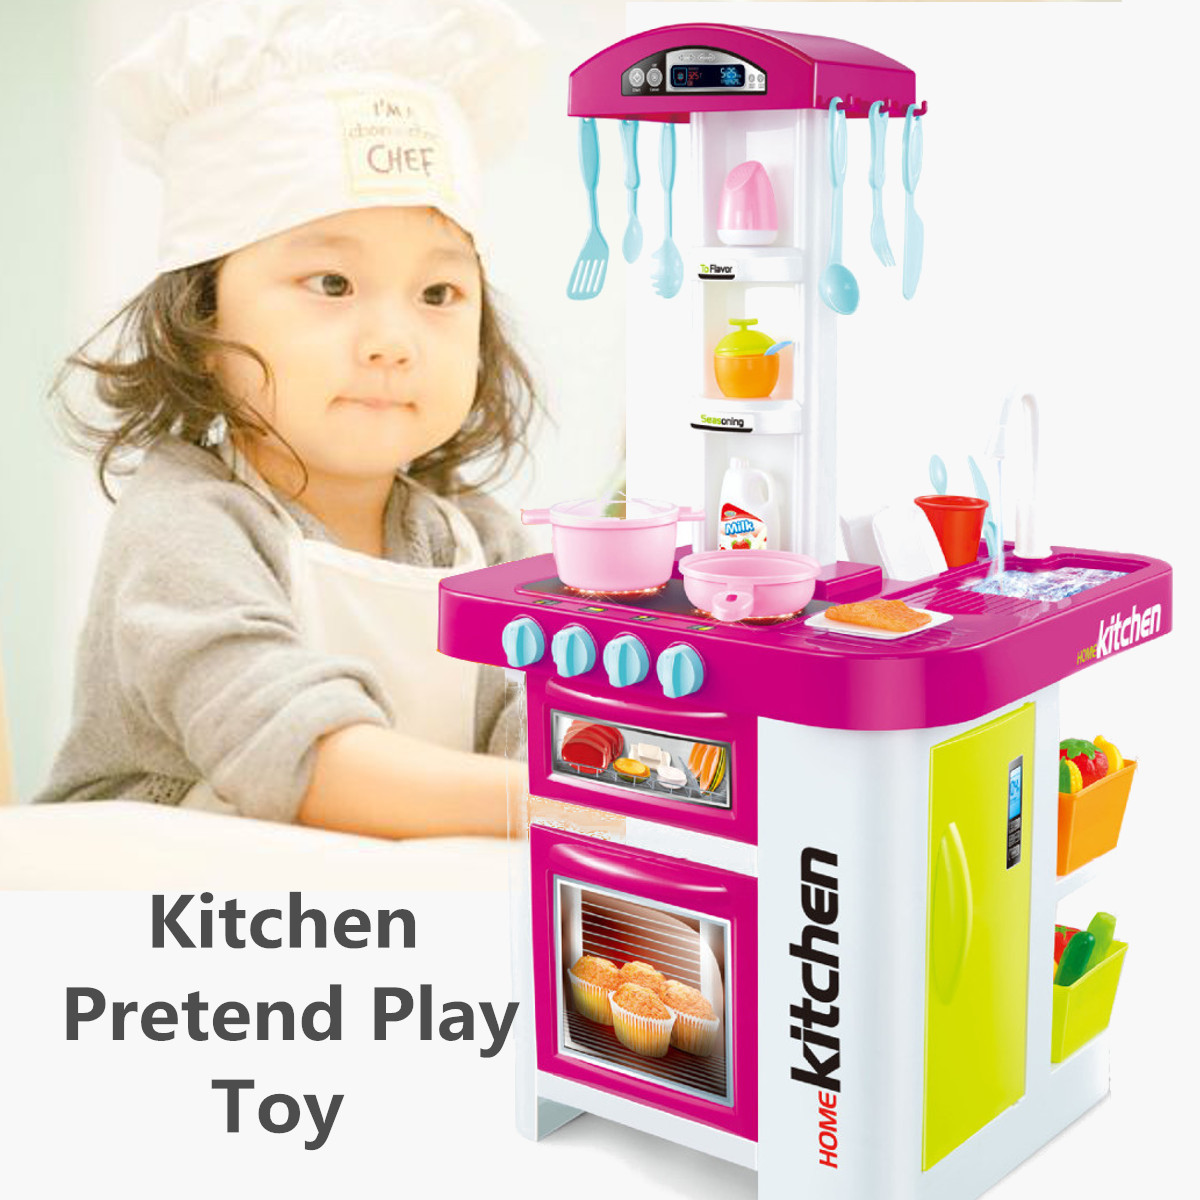 Kids Children Electronic Kitchen Food Pretend Play Cooking Toys Sound Light Set Role Play Kitchen Play Set Toy Pretend Play Kitchen Toys Aliexpress